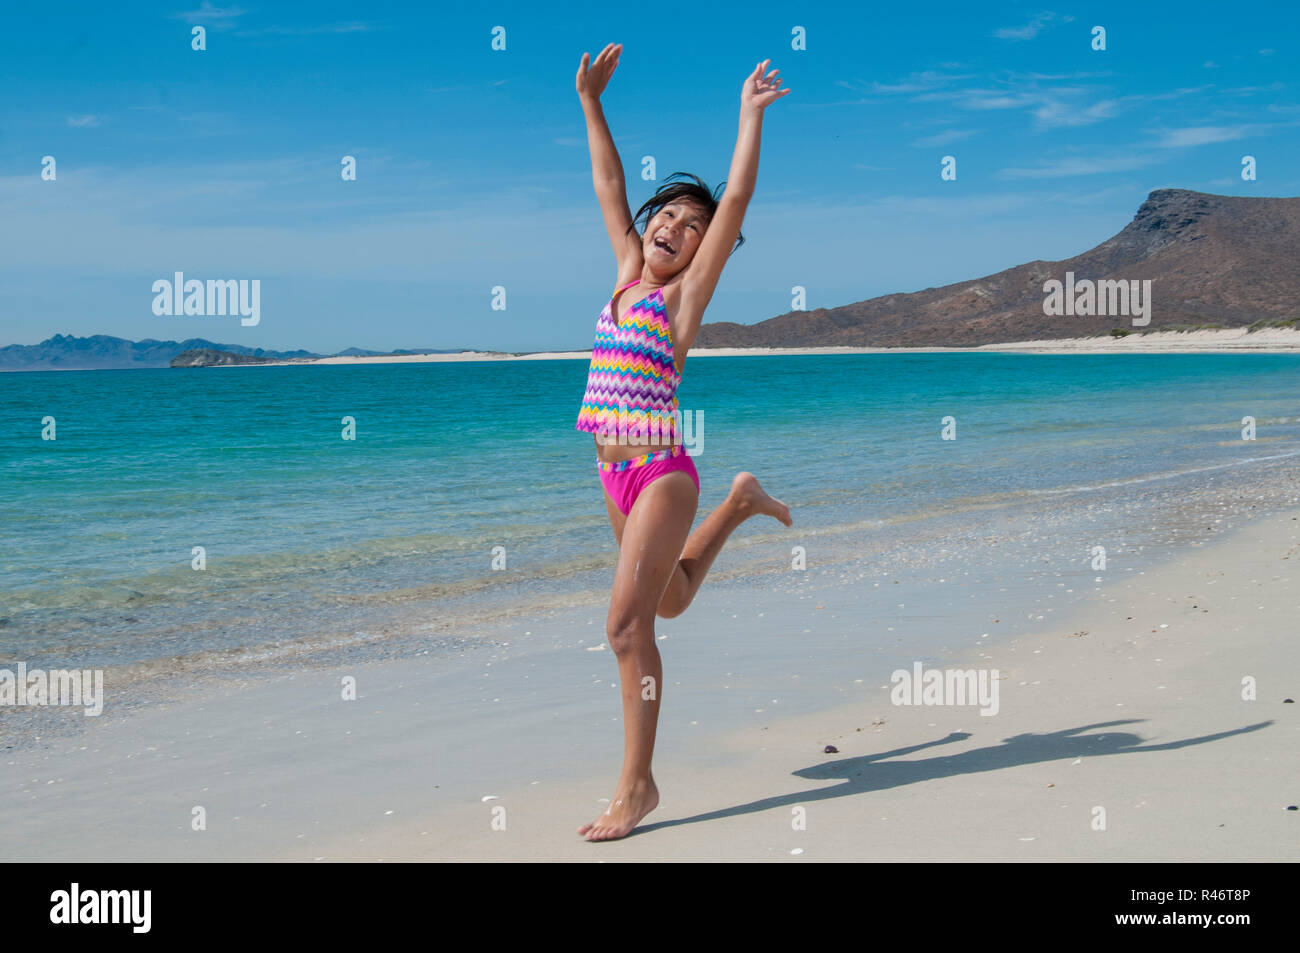 Unplugged. Teenager is running happy on the beach, unplugged of cel phones tablets and electronic devices. - Stock Image